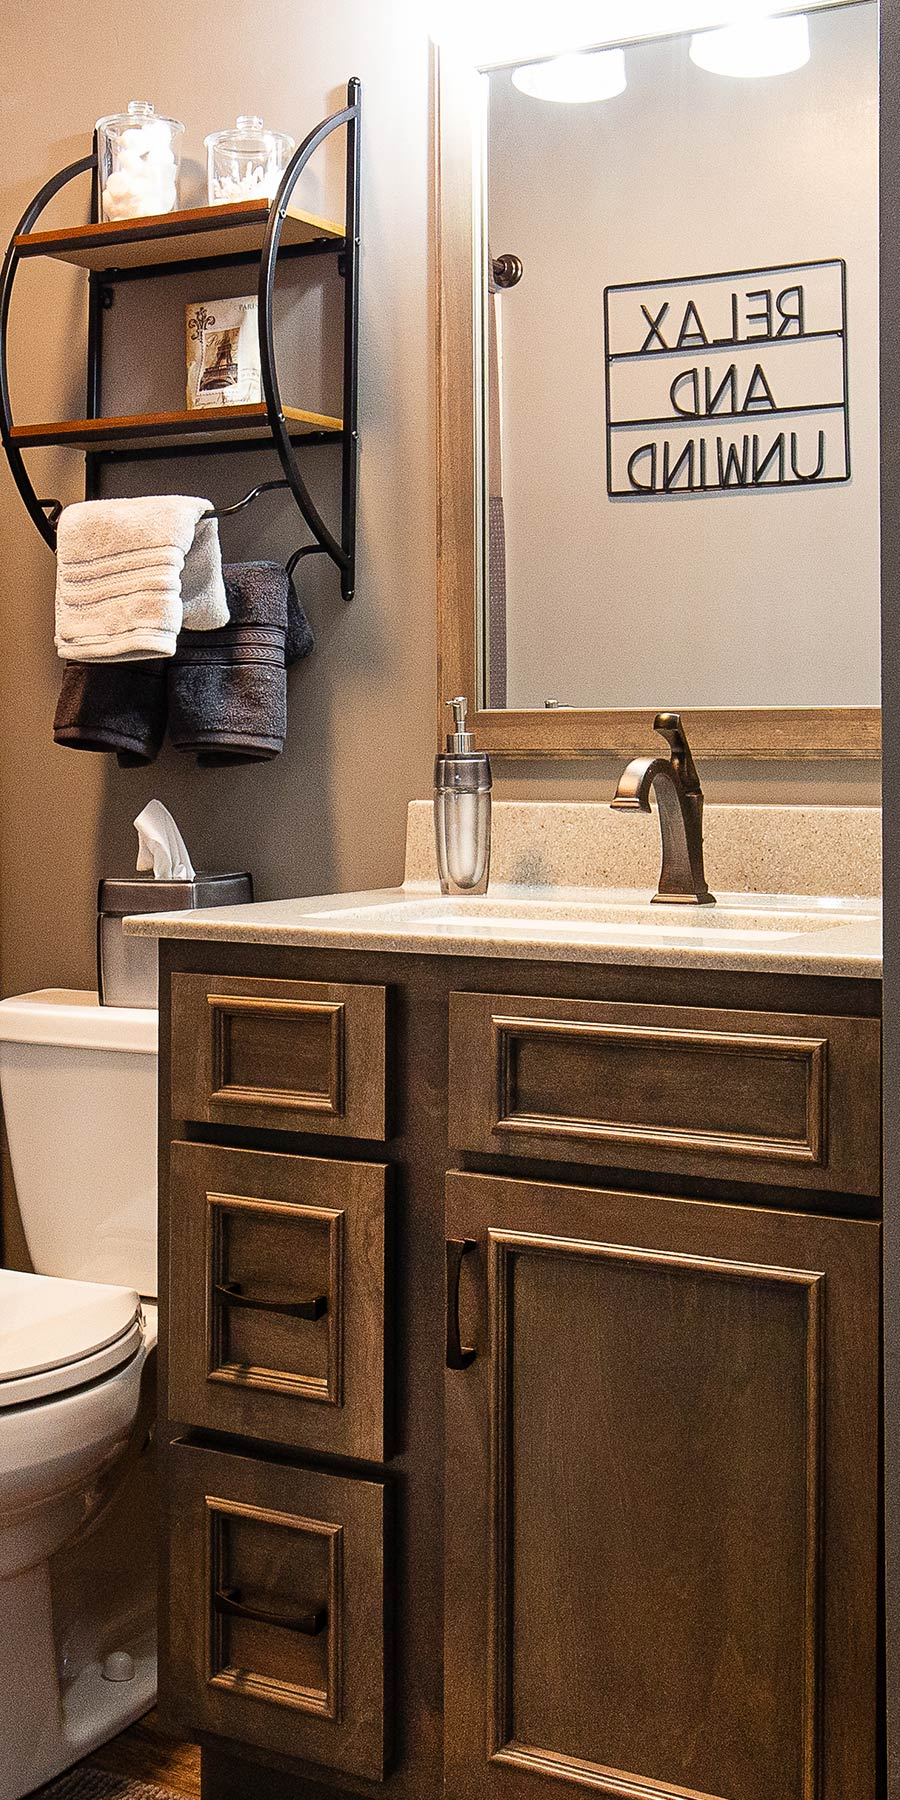 Custom Bathroom | Studio 11 Cabinets & Design